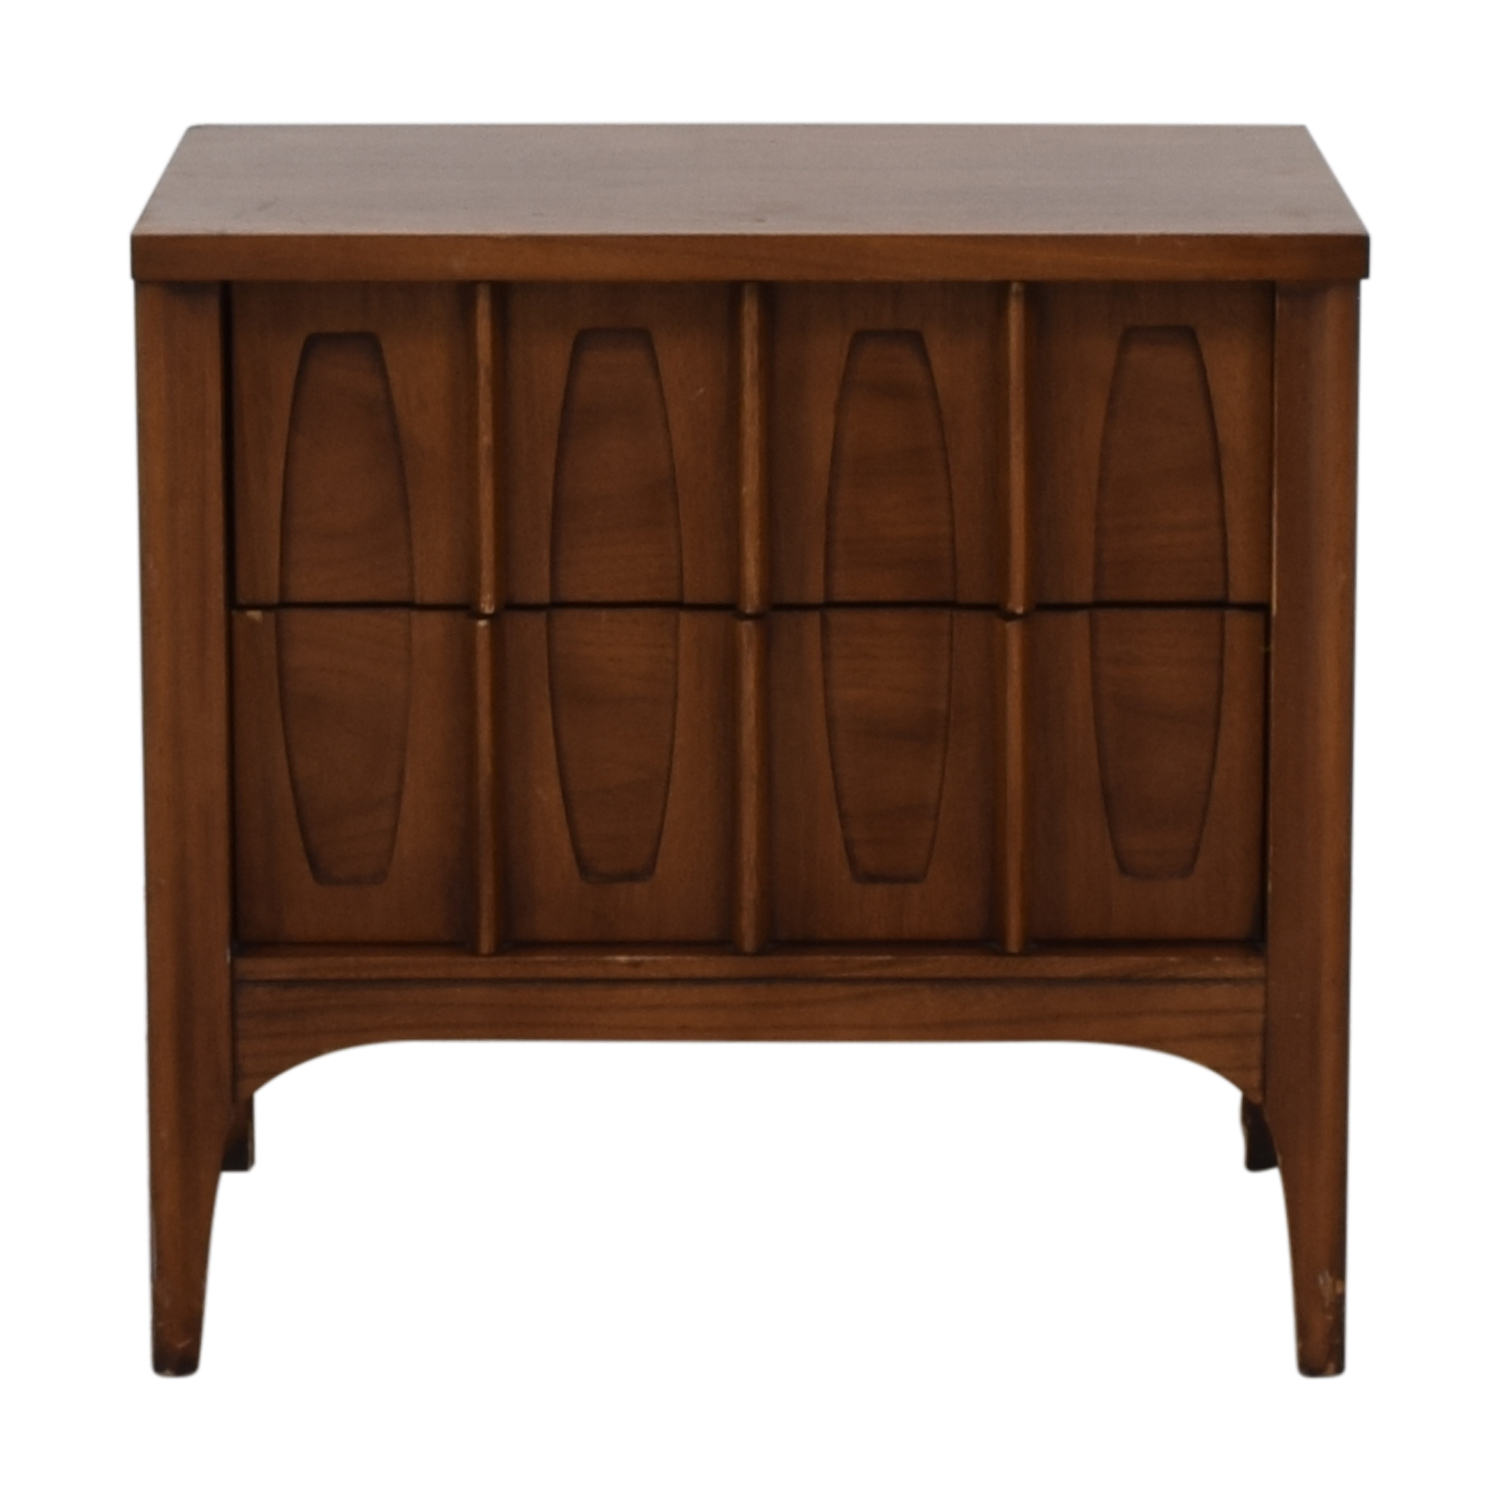 Kent Coffey Kent Coffey Mid Century Night Stand on sale